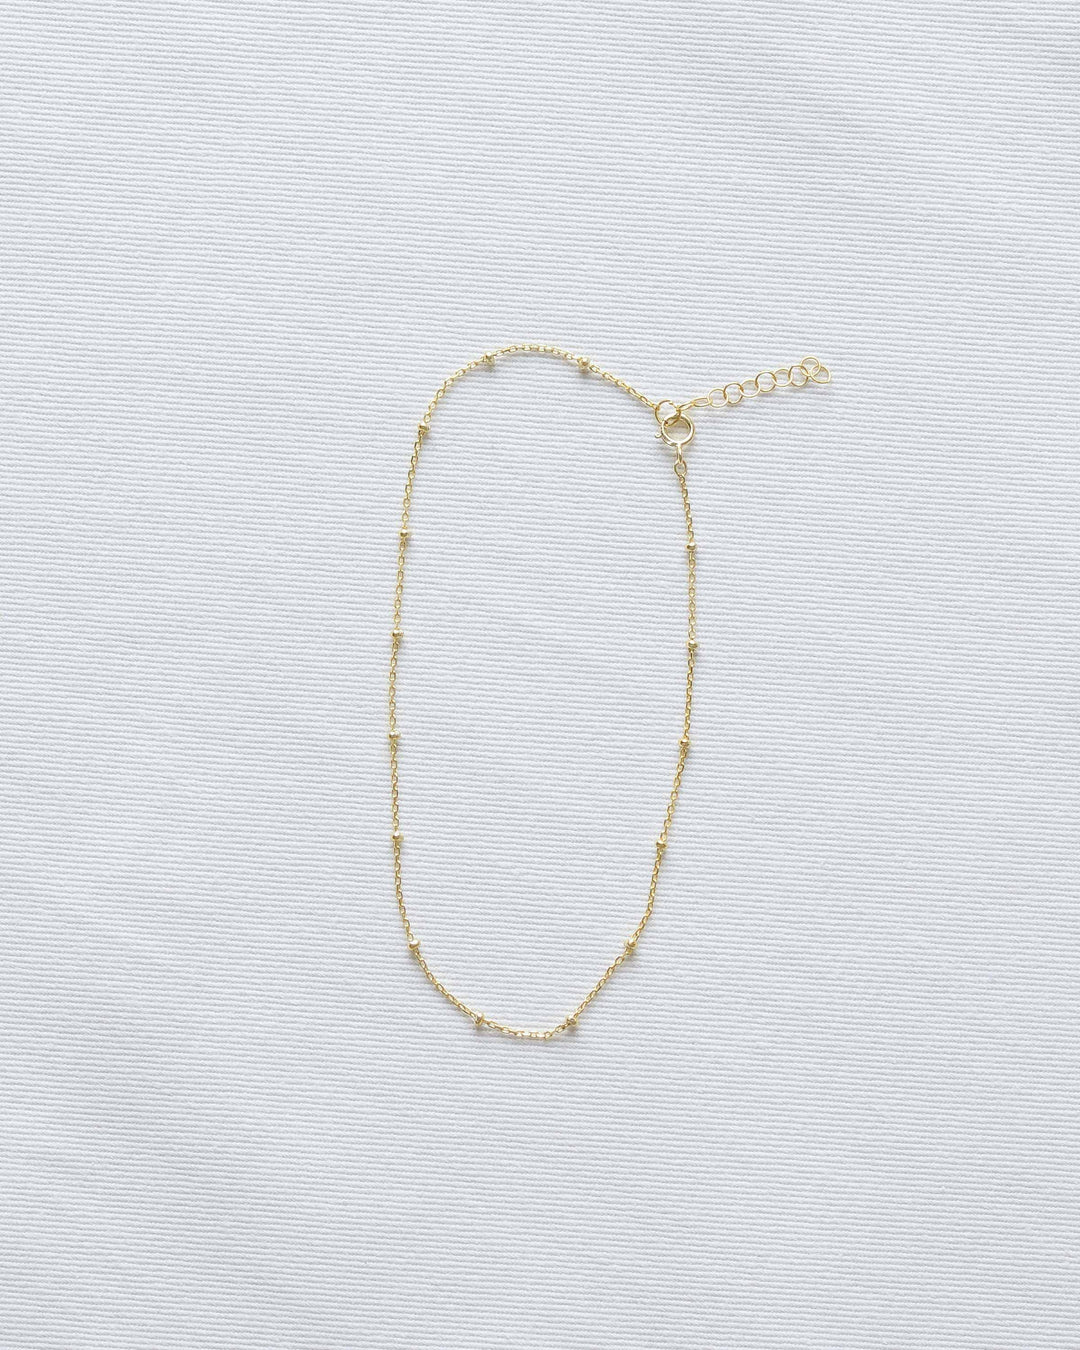 Small Gold Bead Chain Necklace